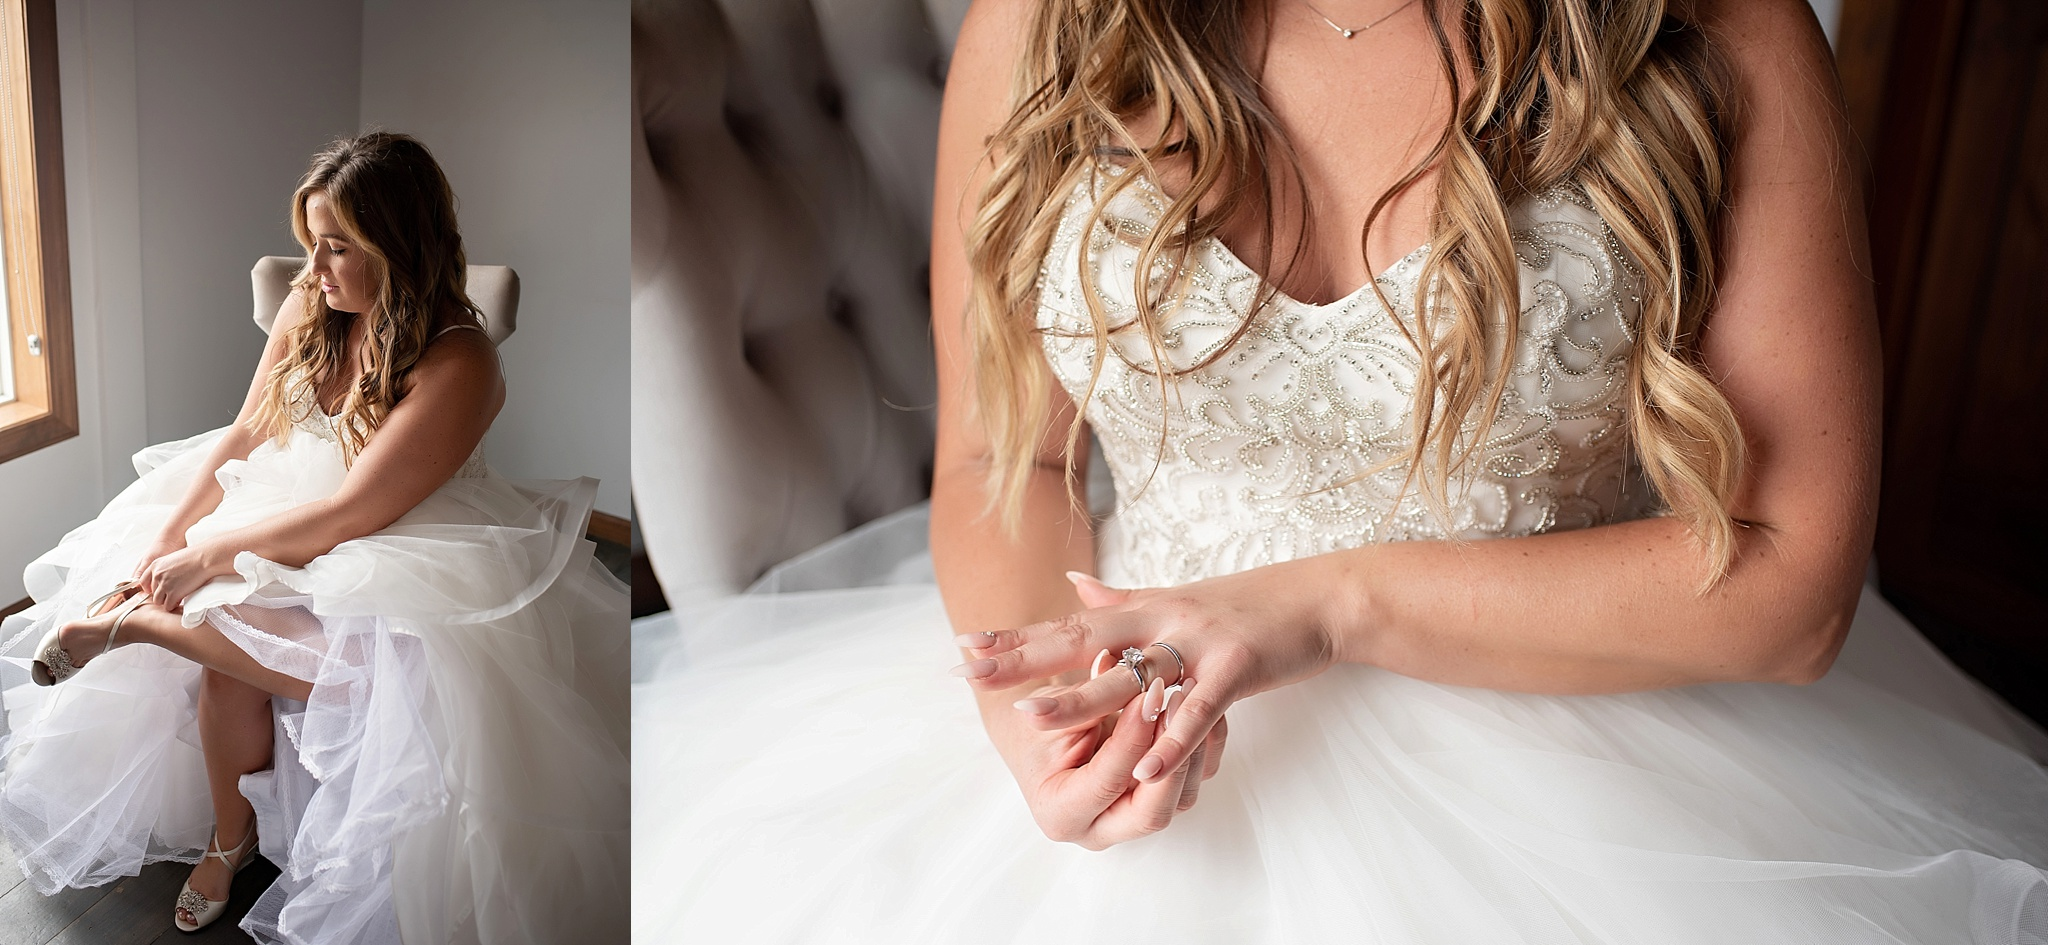 bride puts on her shoes and wedding ring set on her wedding day